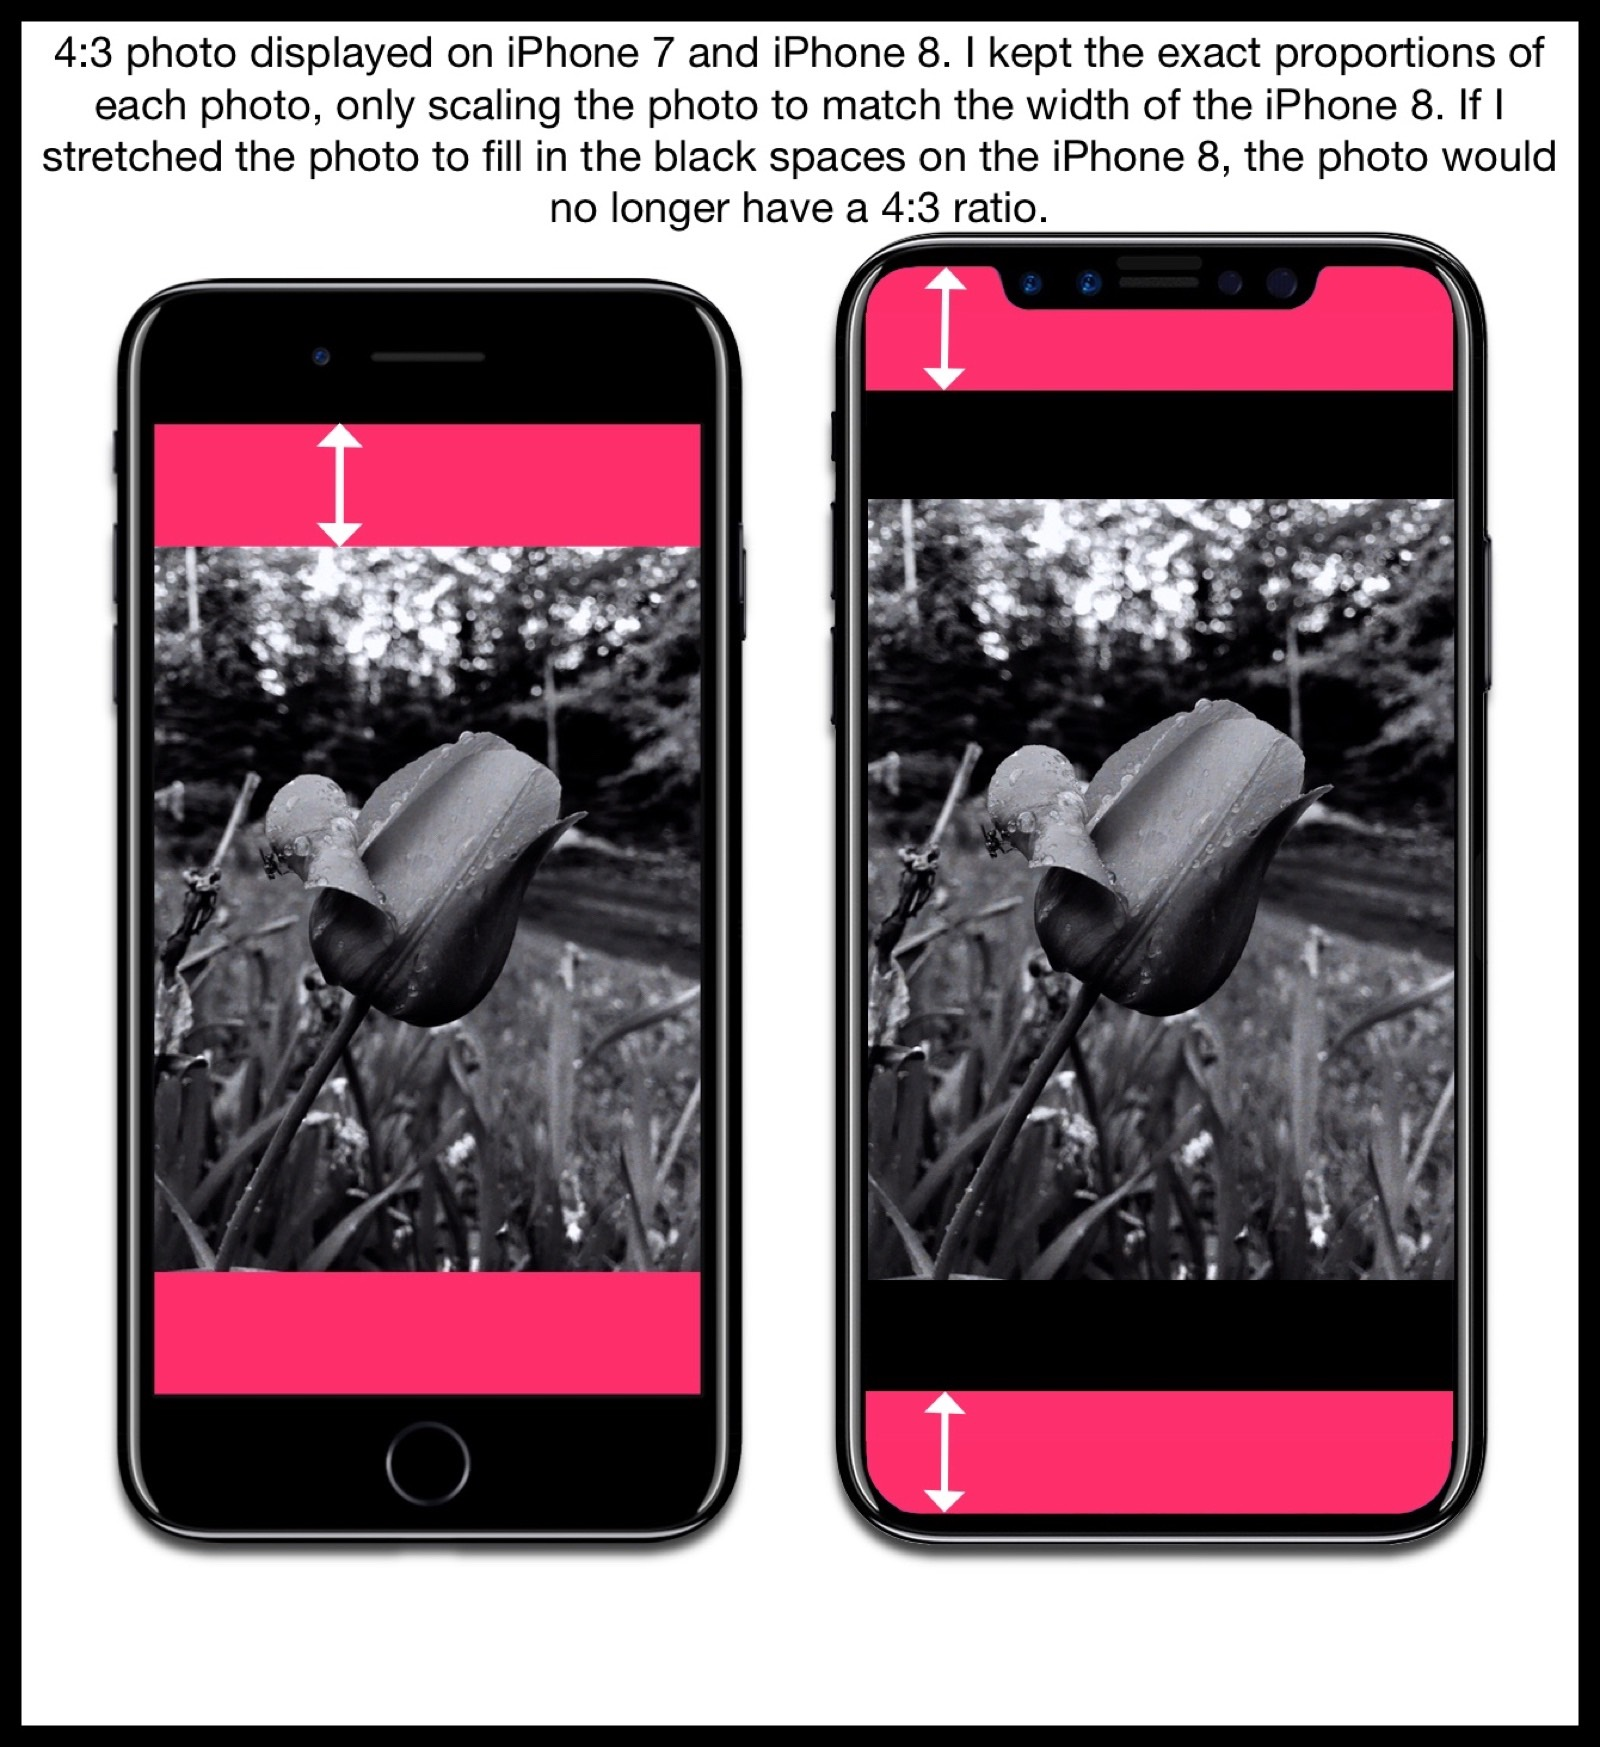 Image comparing how the iPhone 7 and iPhone 8 mockup displays photos with a 4:3 aspect ratio.